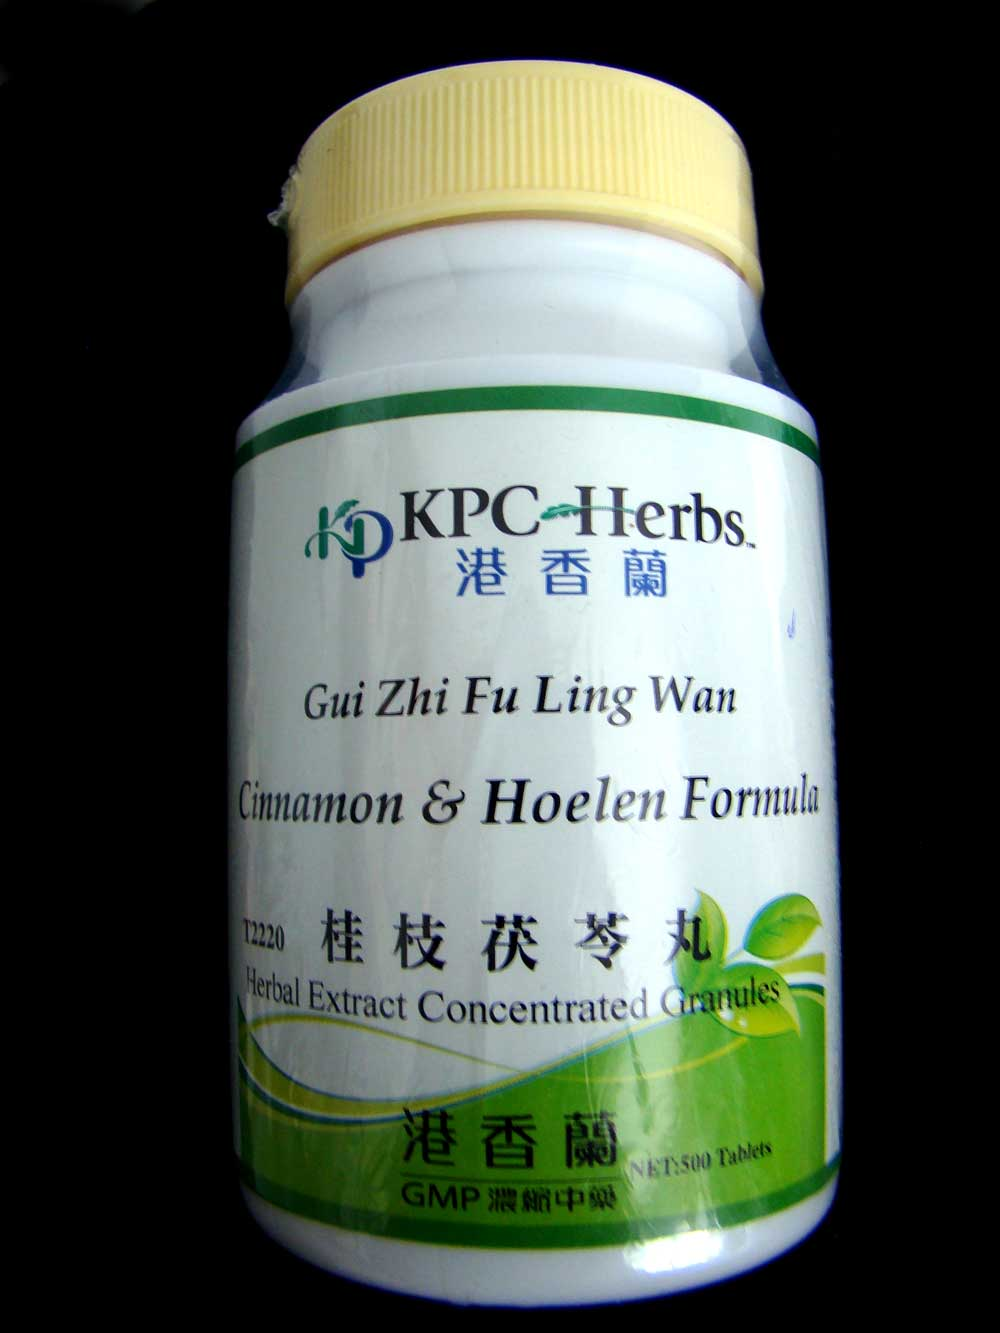 kpc chinese herbs KPC Chinese Herbal Medicine Products 5:1 Granules - GMP